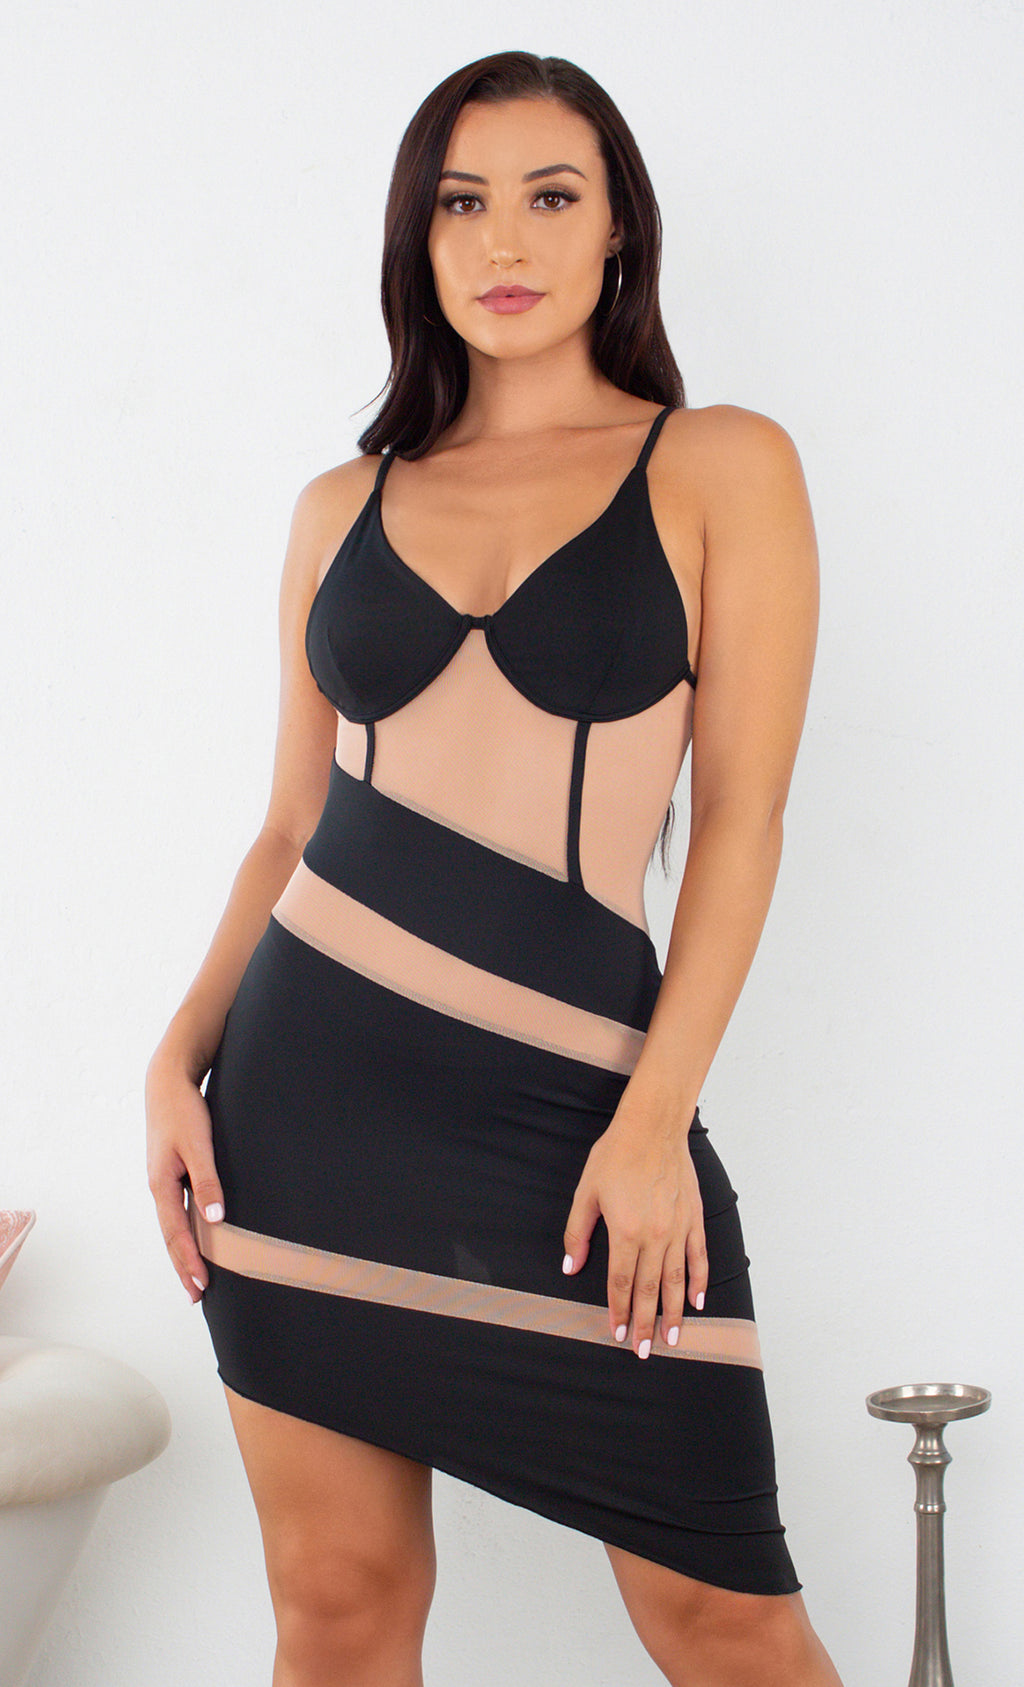 Wrapped Up In You Spaghetti Strap Sleeveless Stretch Bustier Cut Out Black Sheer Nude Mesh Asymmetrical Hem Bodycon Mini Dress Wavy